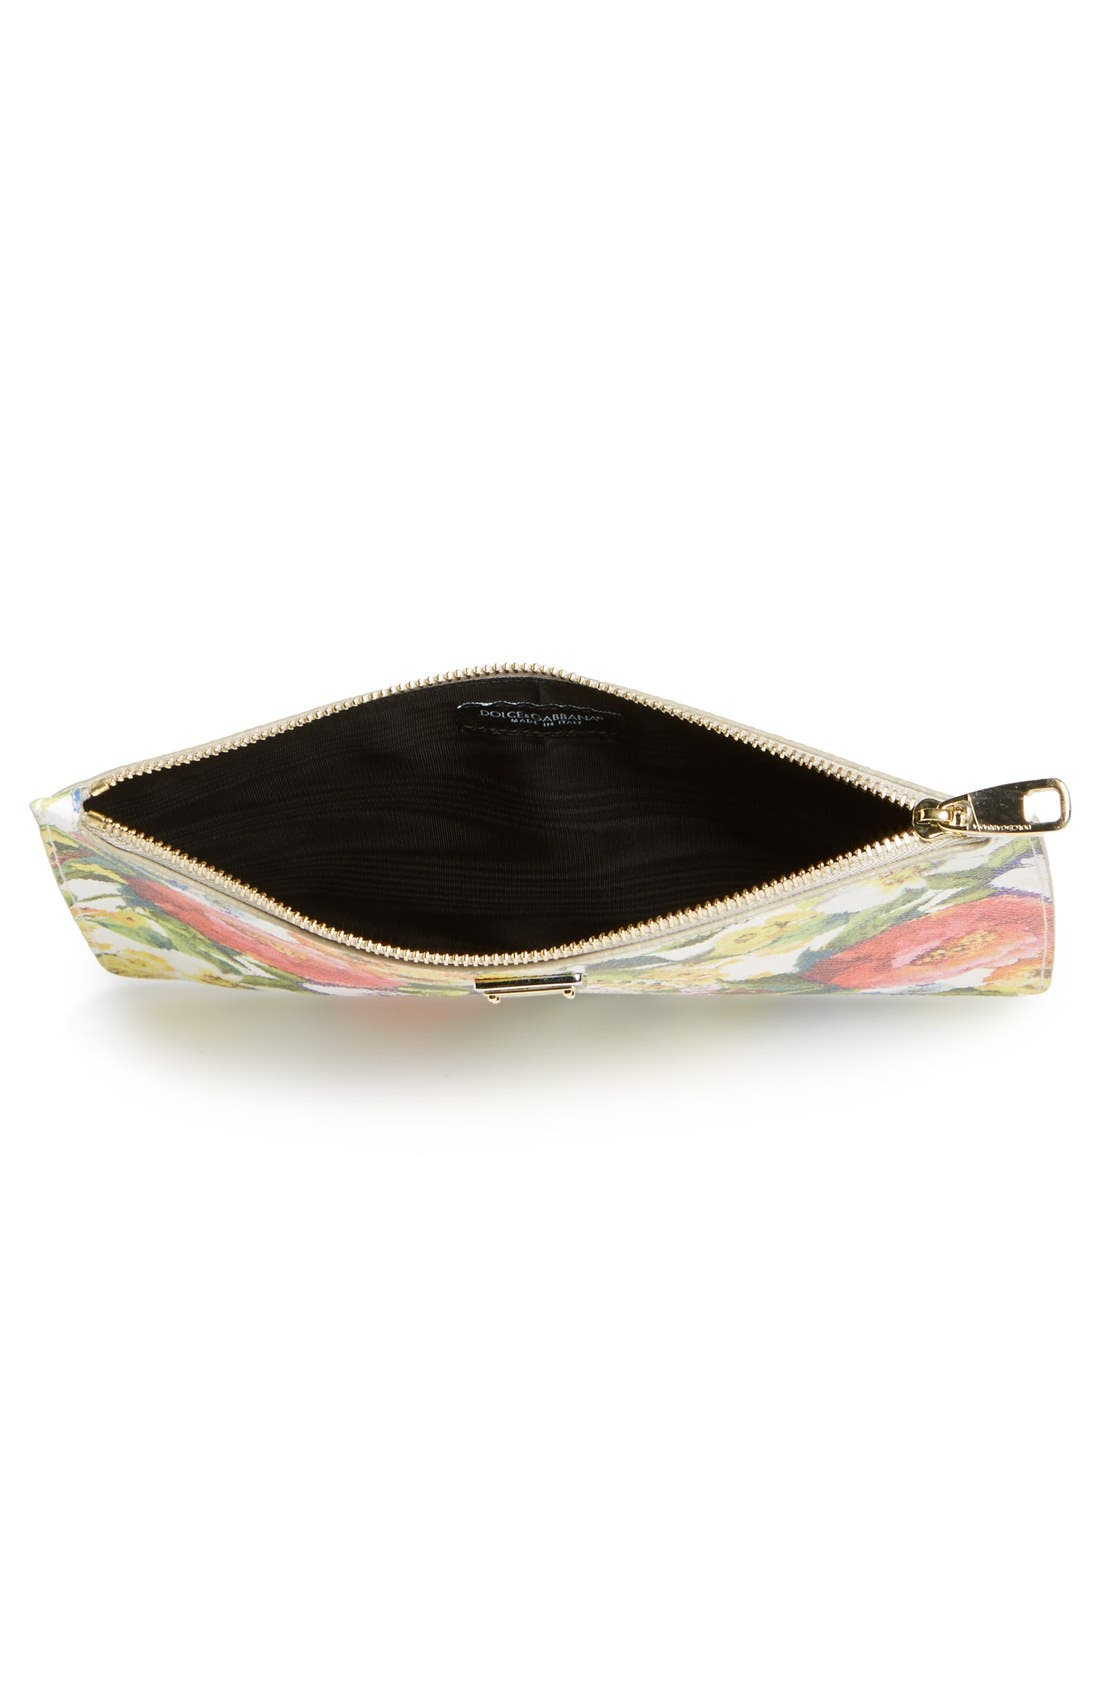 Alternate Image 3  - Dolce&Gabbana Floral Print Pouch